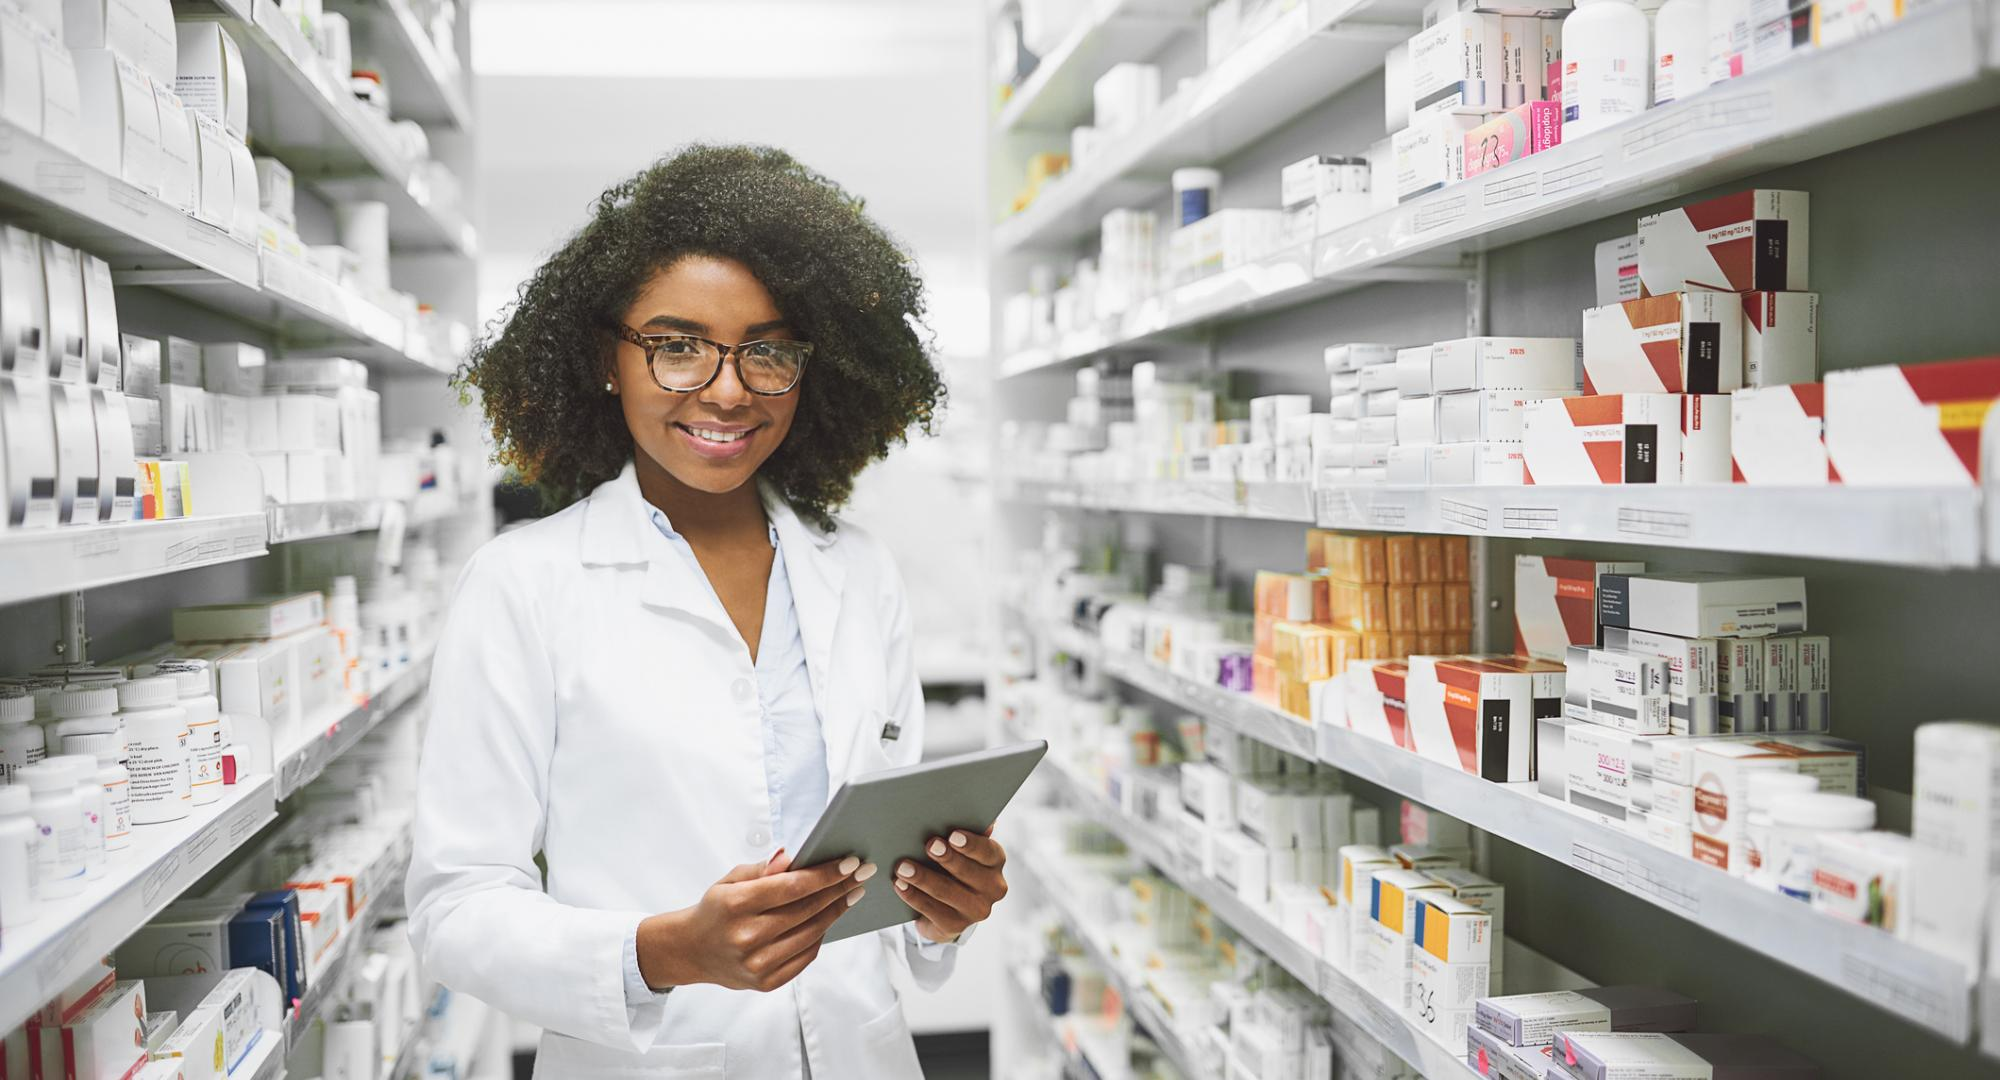 Young female pharmacist standing in an aisle of pharmaceuticals